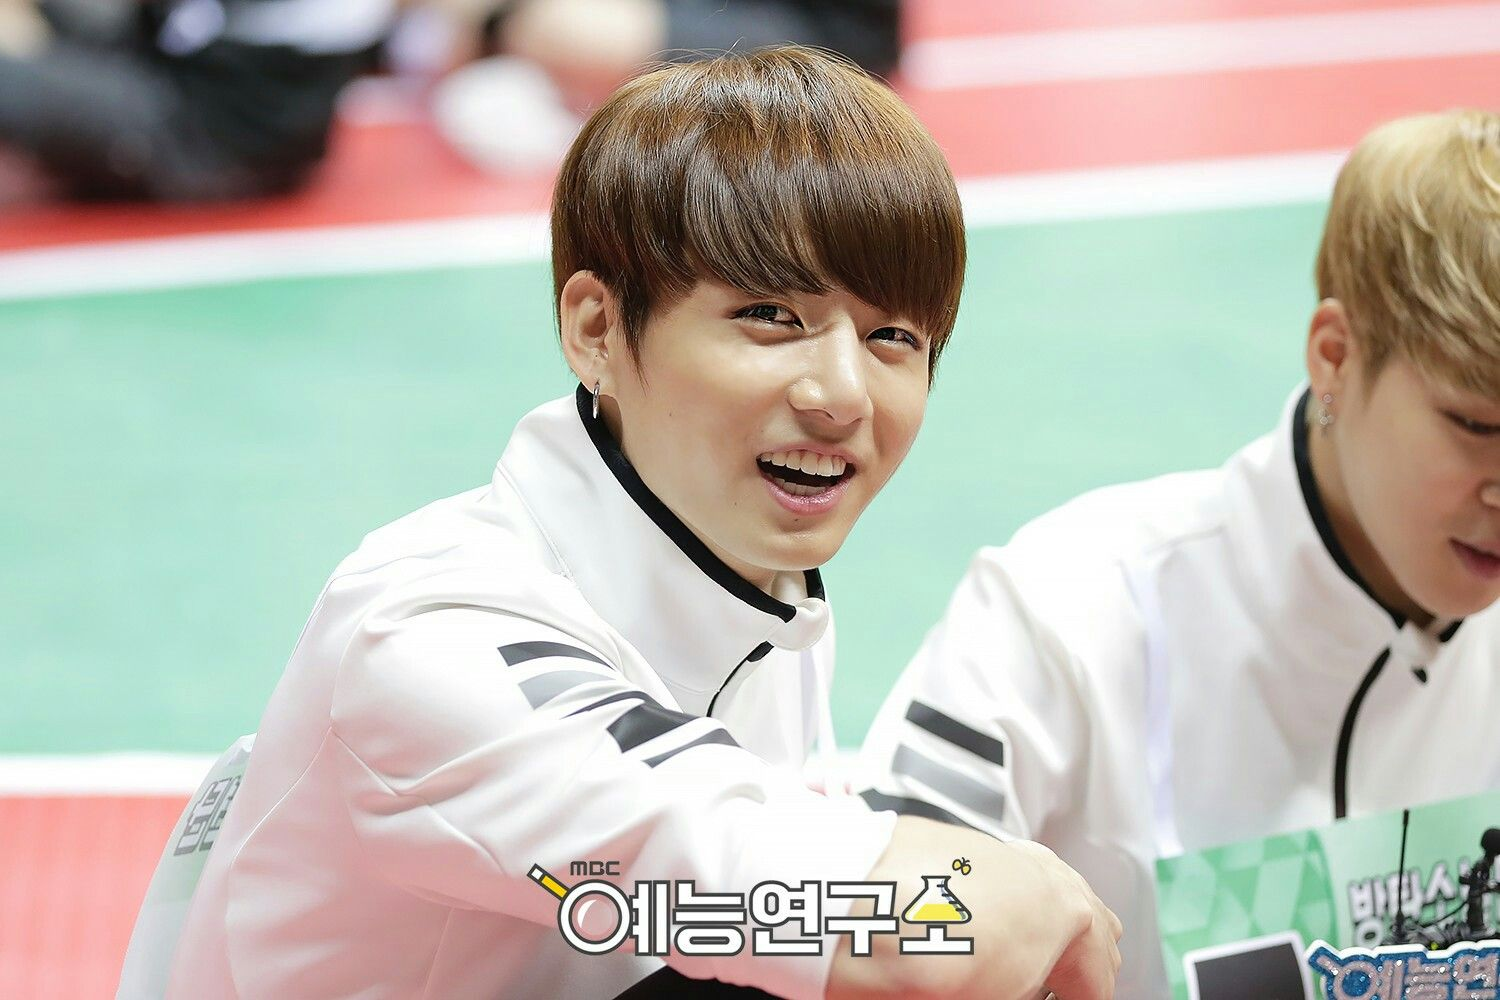 Jungkook and Jimin ❤ ISAC 2016 #BTS #방탄소년단